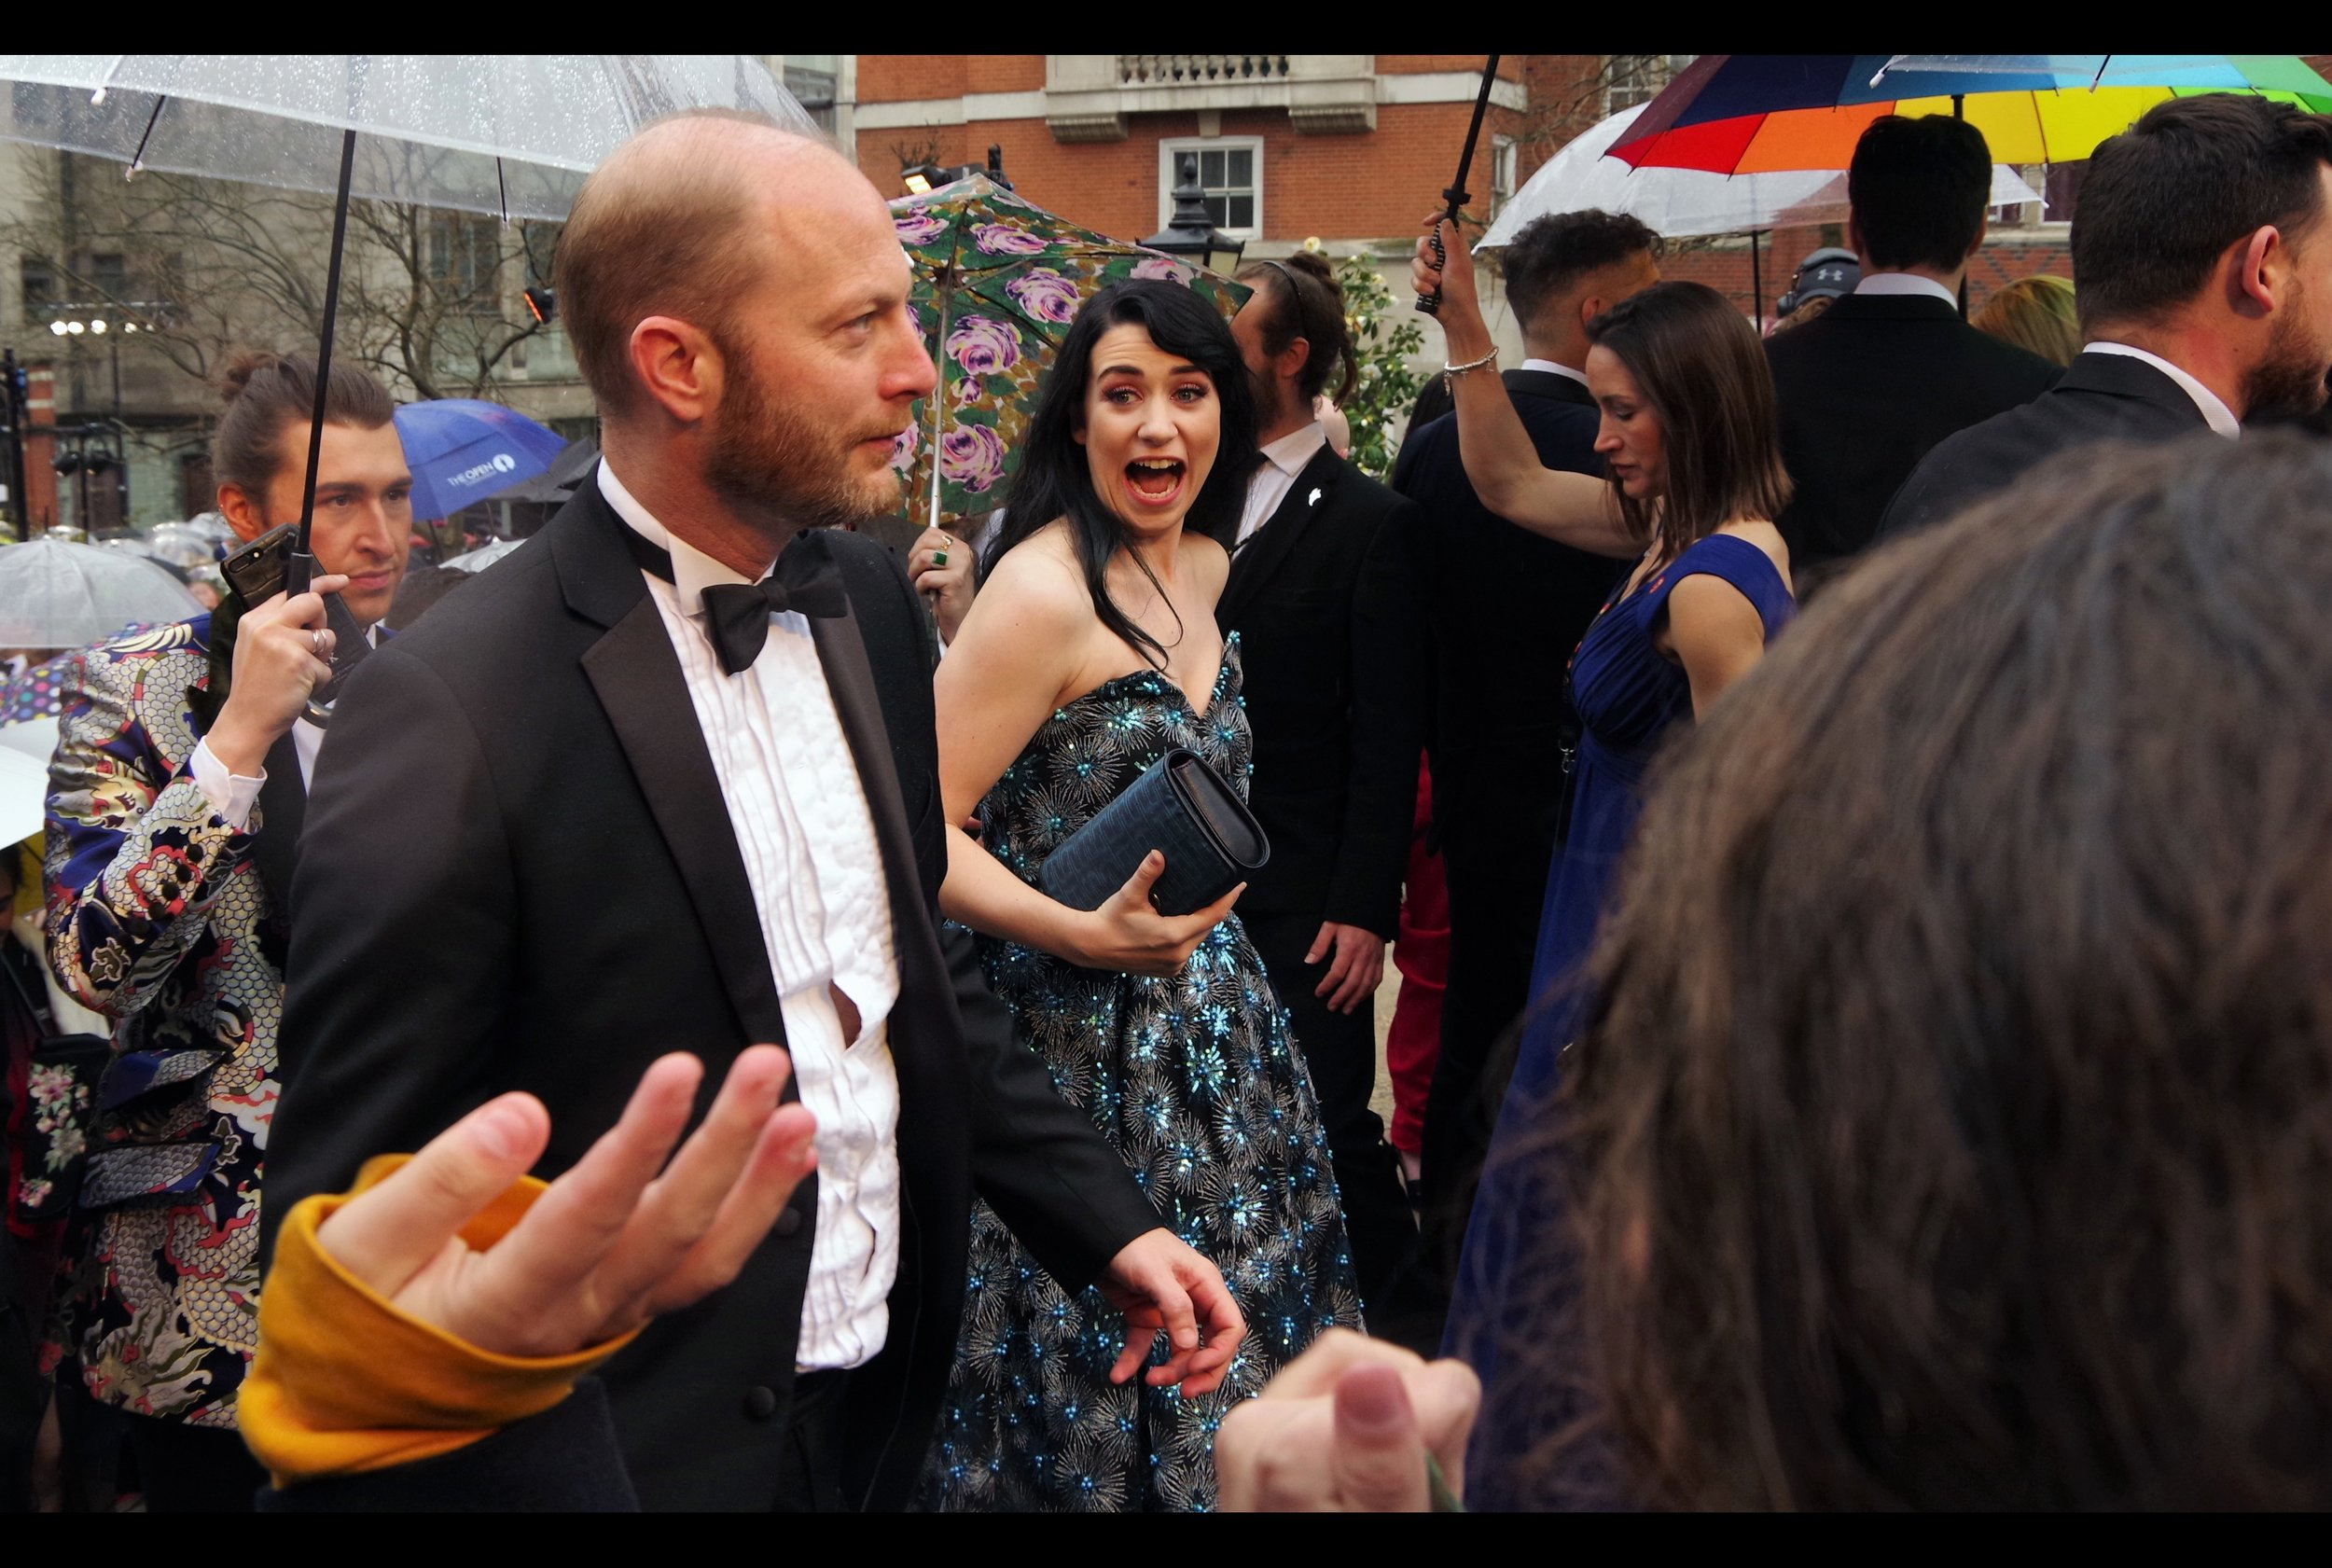 """Lady in Background :   """"OMG! I know this is theatre and I'm meant to be totally understated but that man's hand appears to be FREAKISHLY HUGE!!""""  . In other momentous news, Wireimage has finally come through for once... and identified the lady as Danielle Hope."""